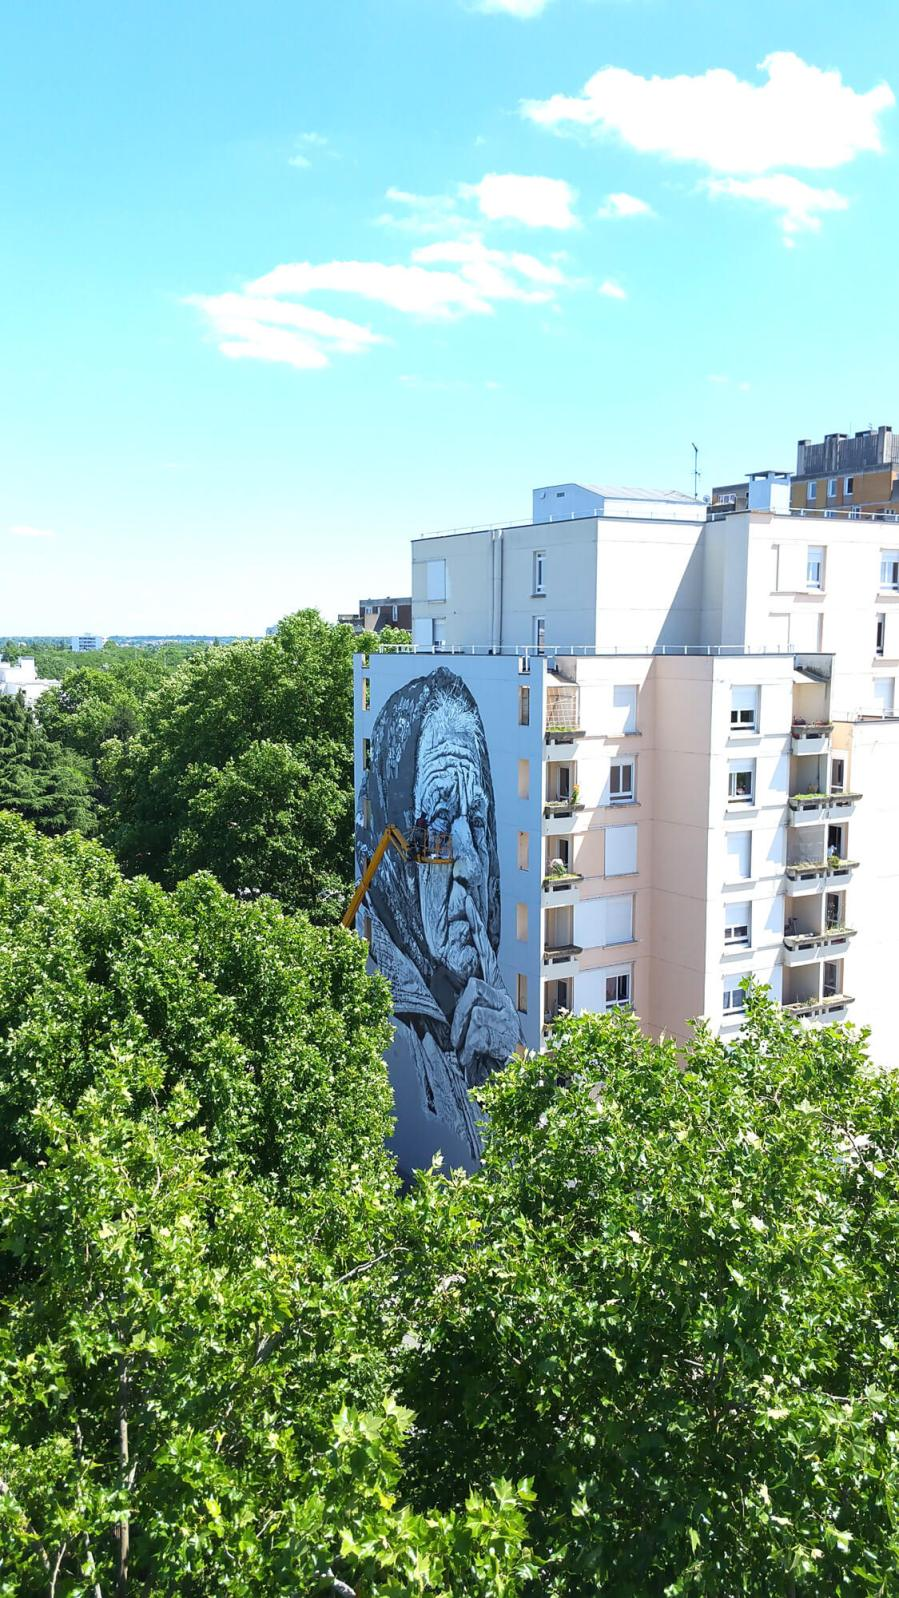 ECB Hendrik Beikirch, Wall Street Art, Evry, Paris. Photo Credit Mathgoth gallery